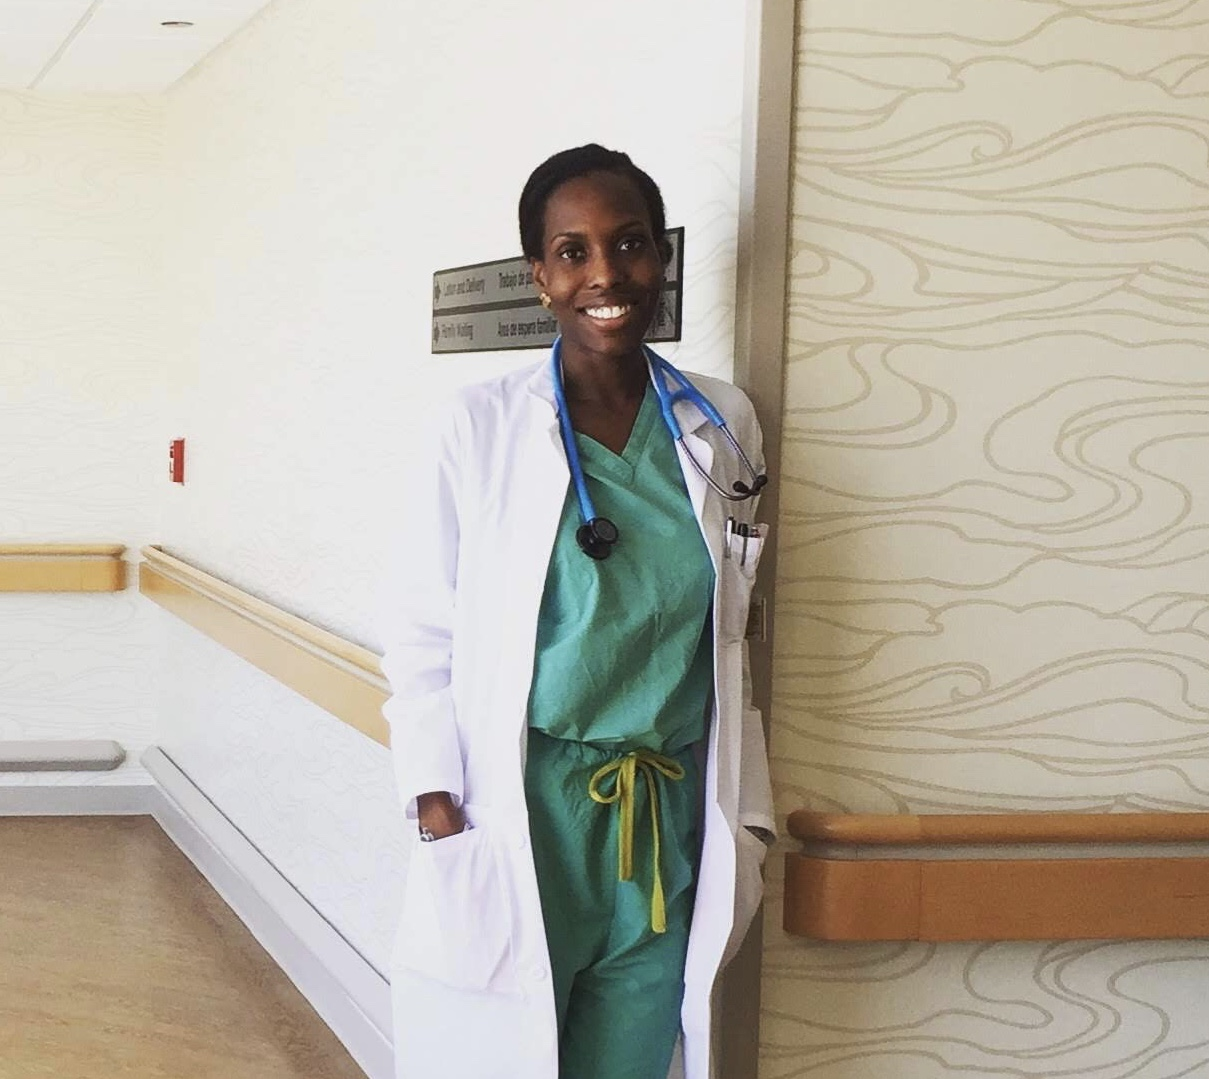 A smiling Choumika poses in her hospital scrubs.